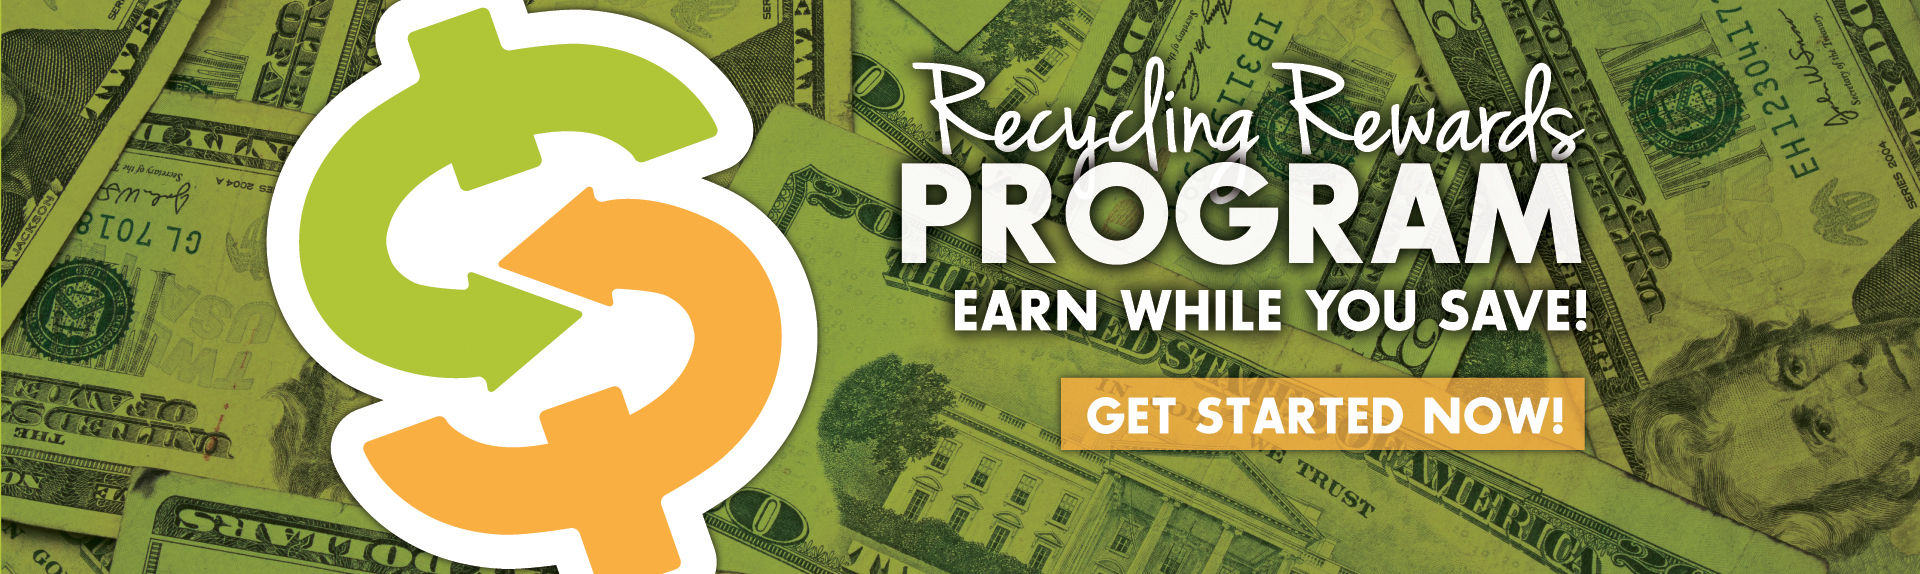 WV-Cashin-Recycling-Rewards-Web-Slider_2